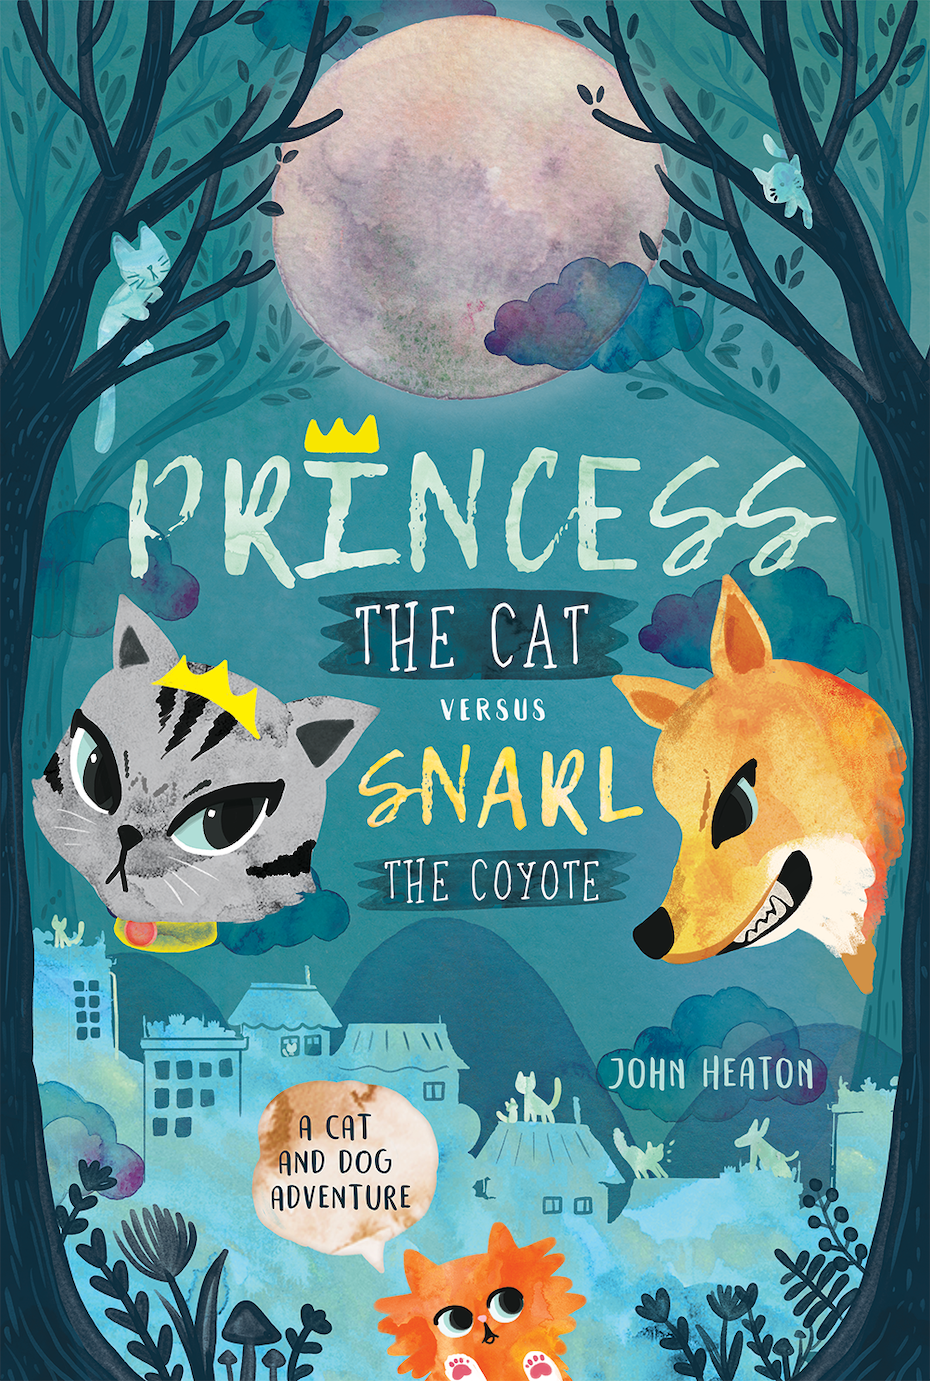 Children Book Cover Images ~ Children s book covers that will bring out the kid in